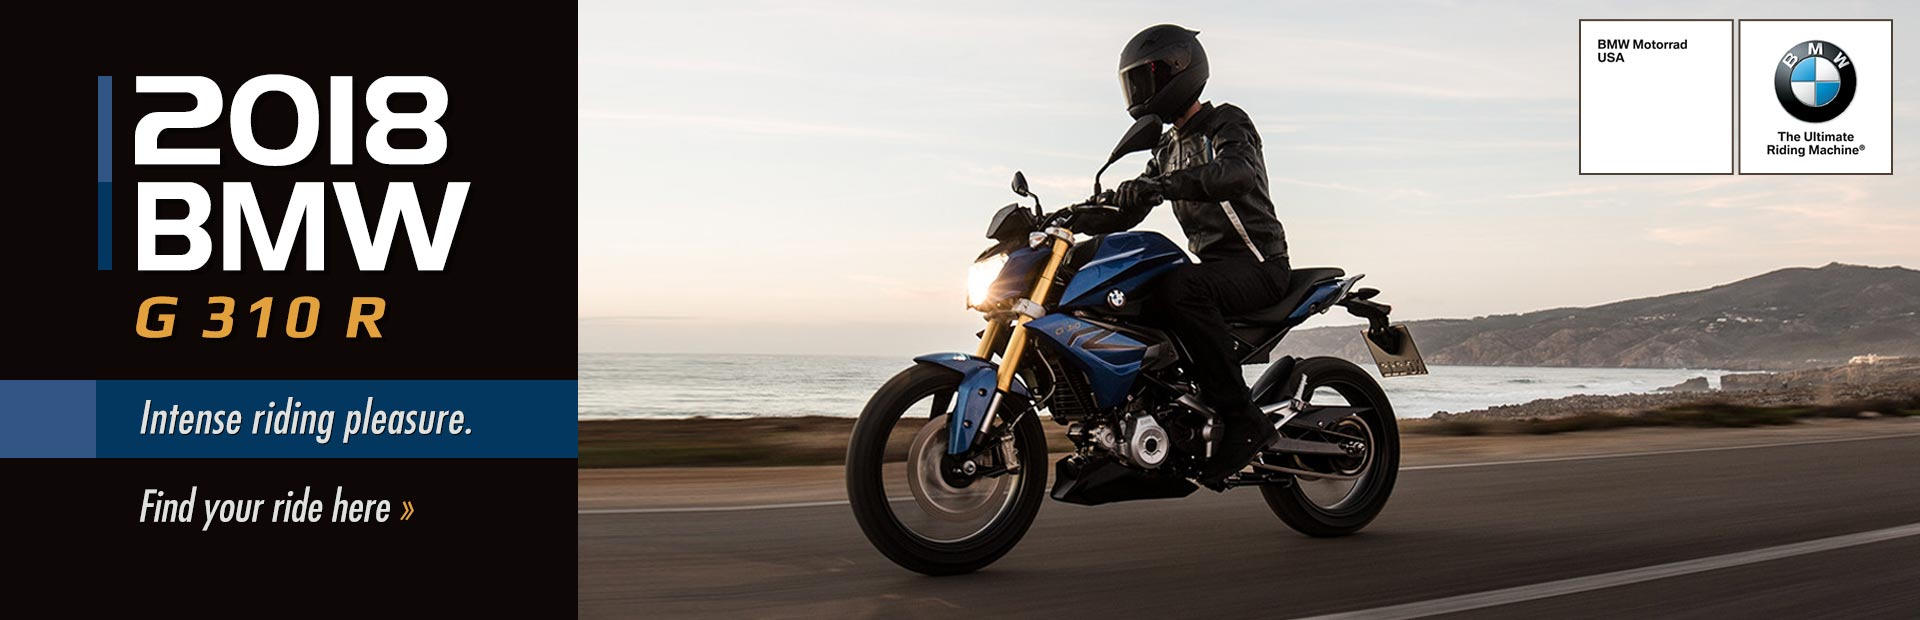 2018 BMW G 310 R: Click here for details!